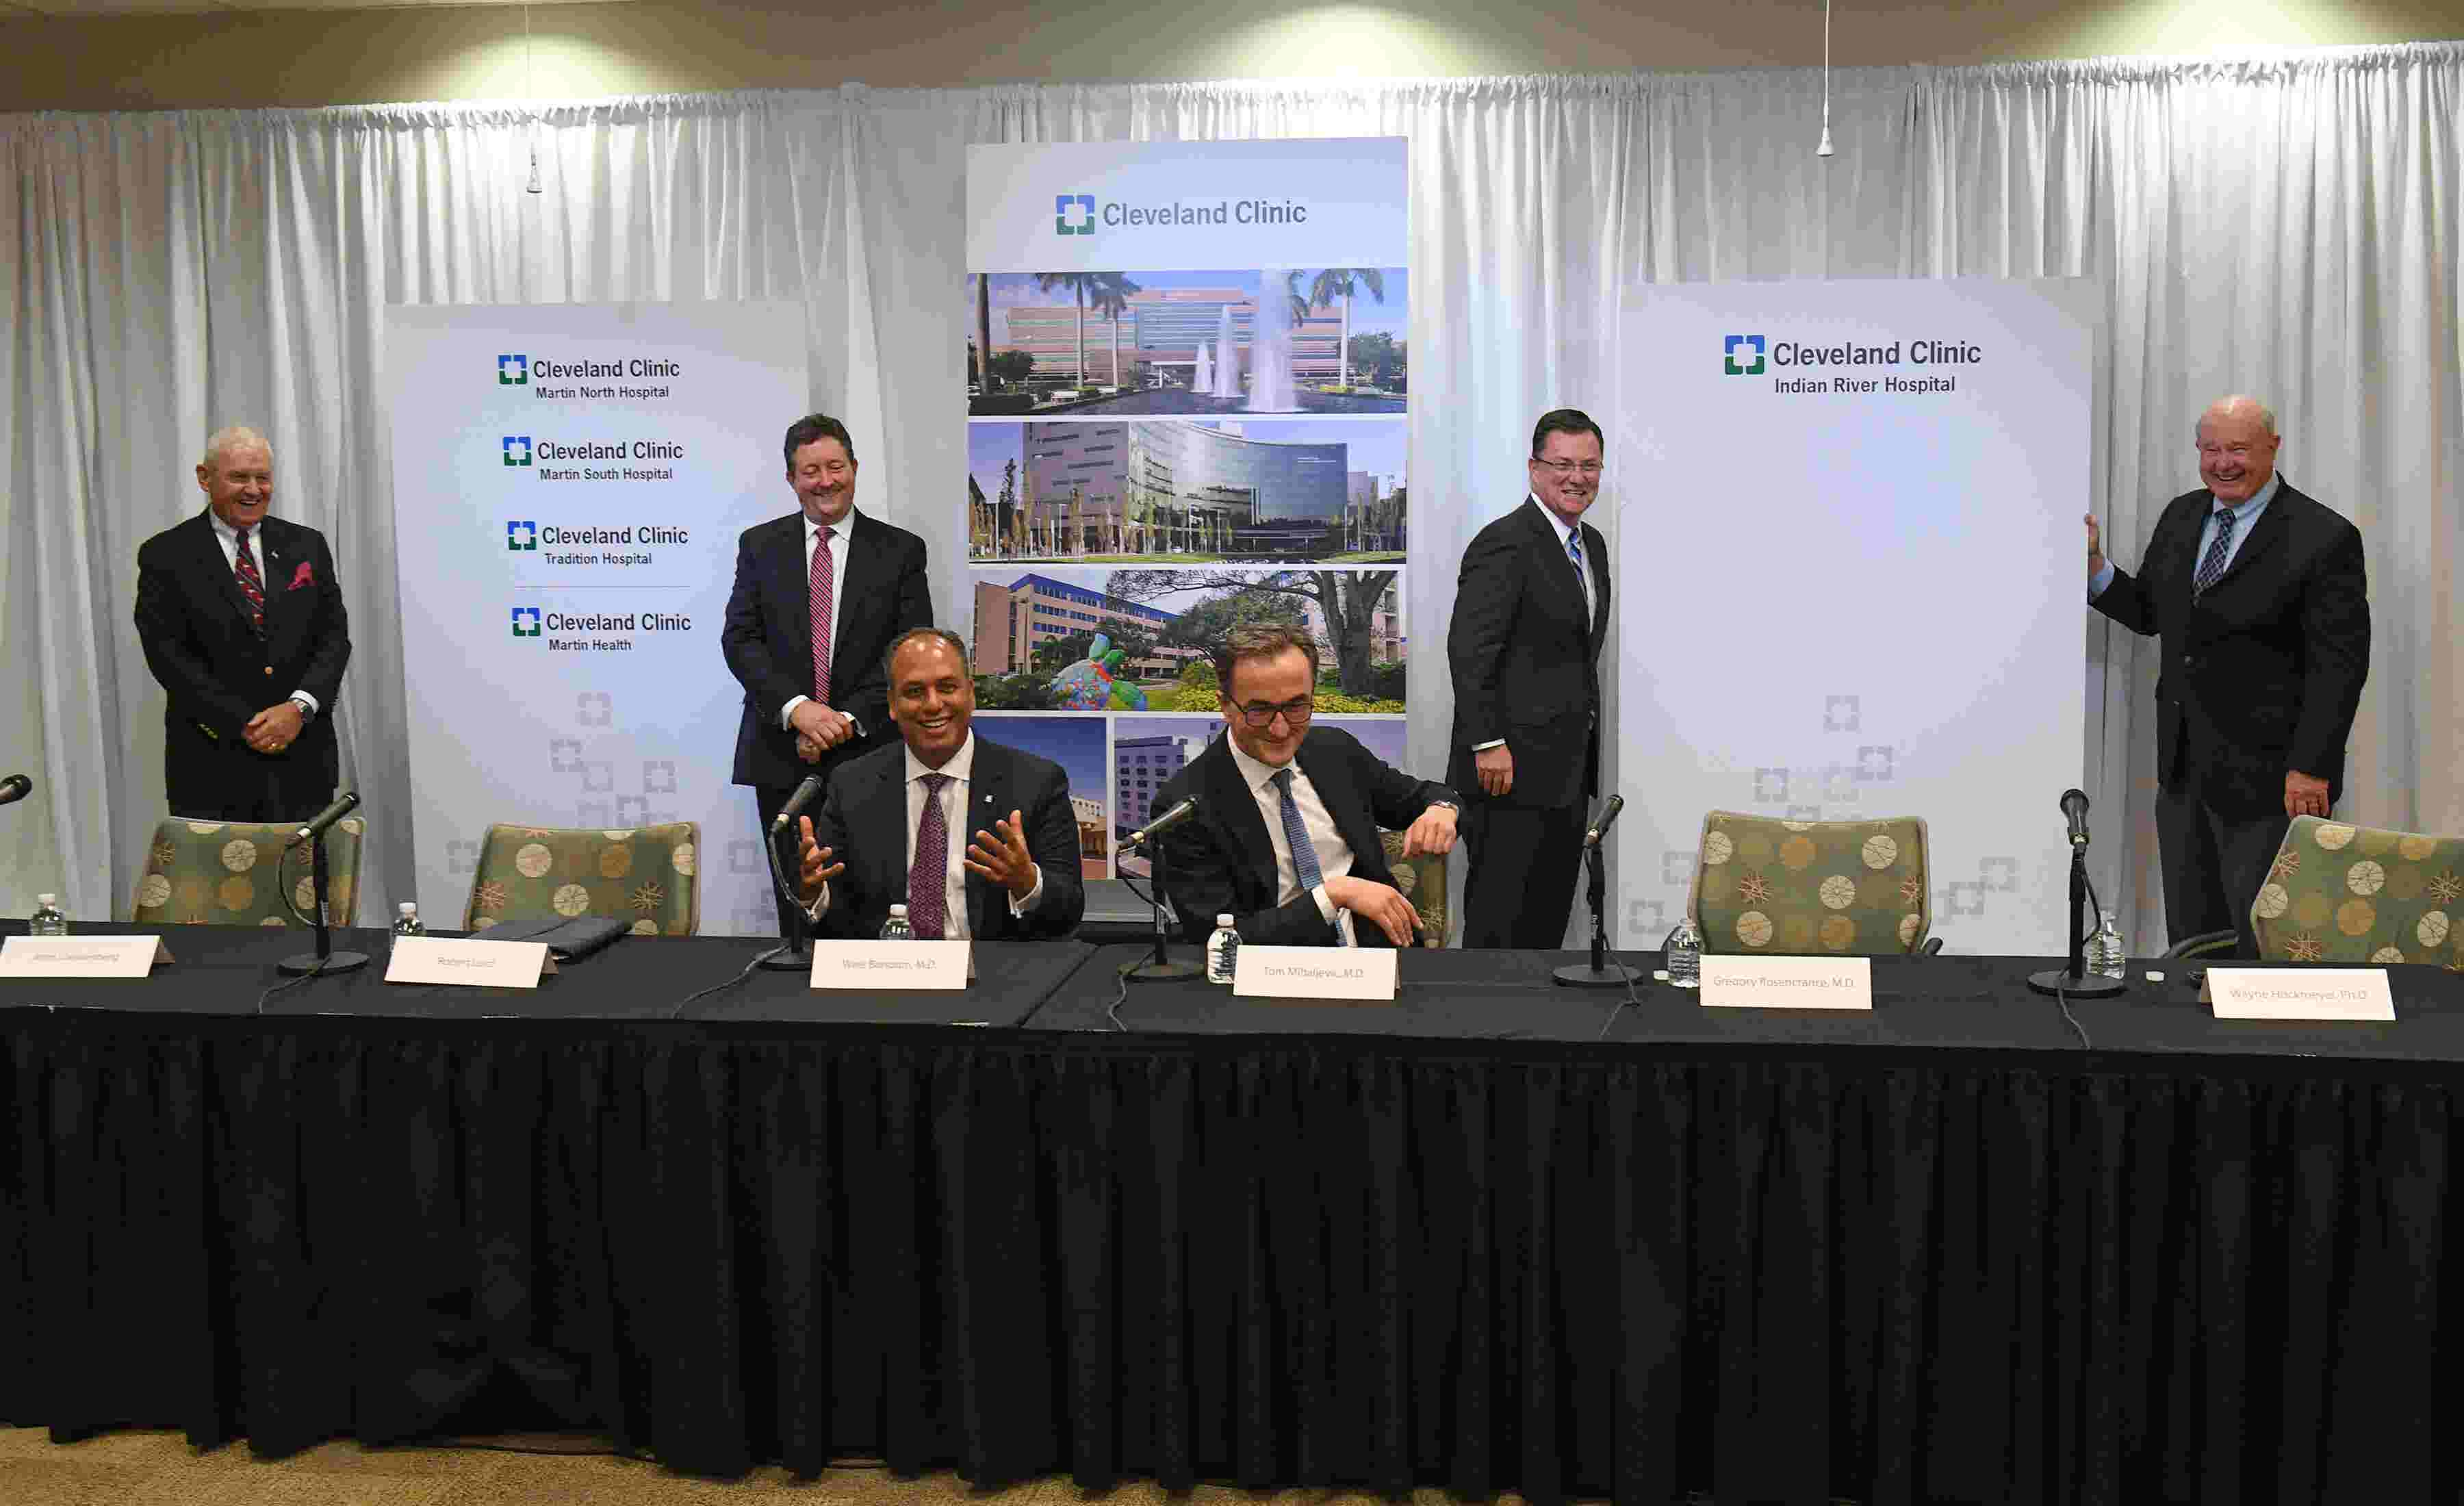 Cleveland Clinic acquires local hospitals, announces new names